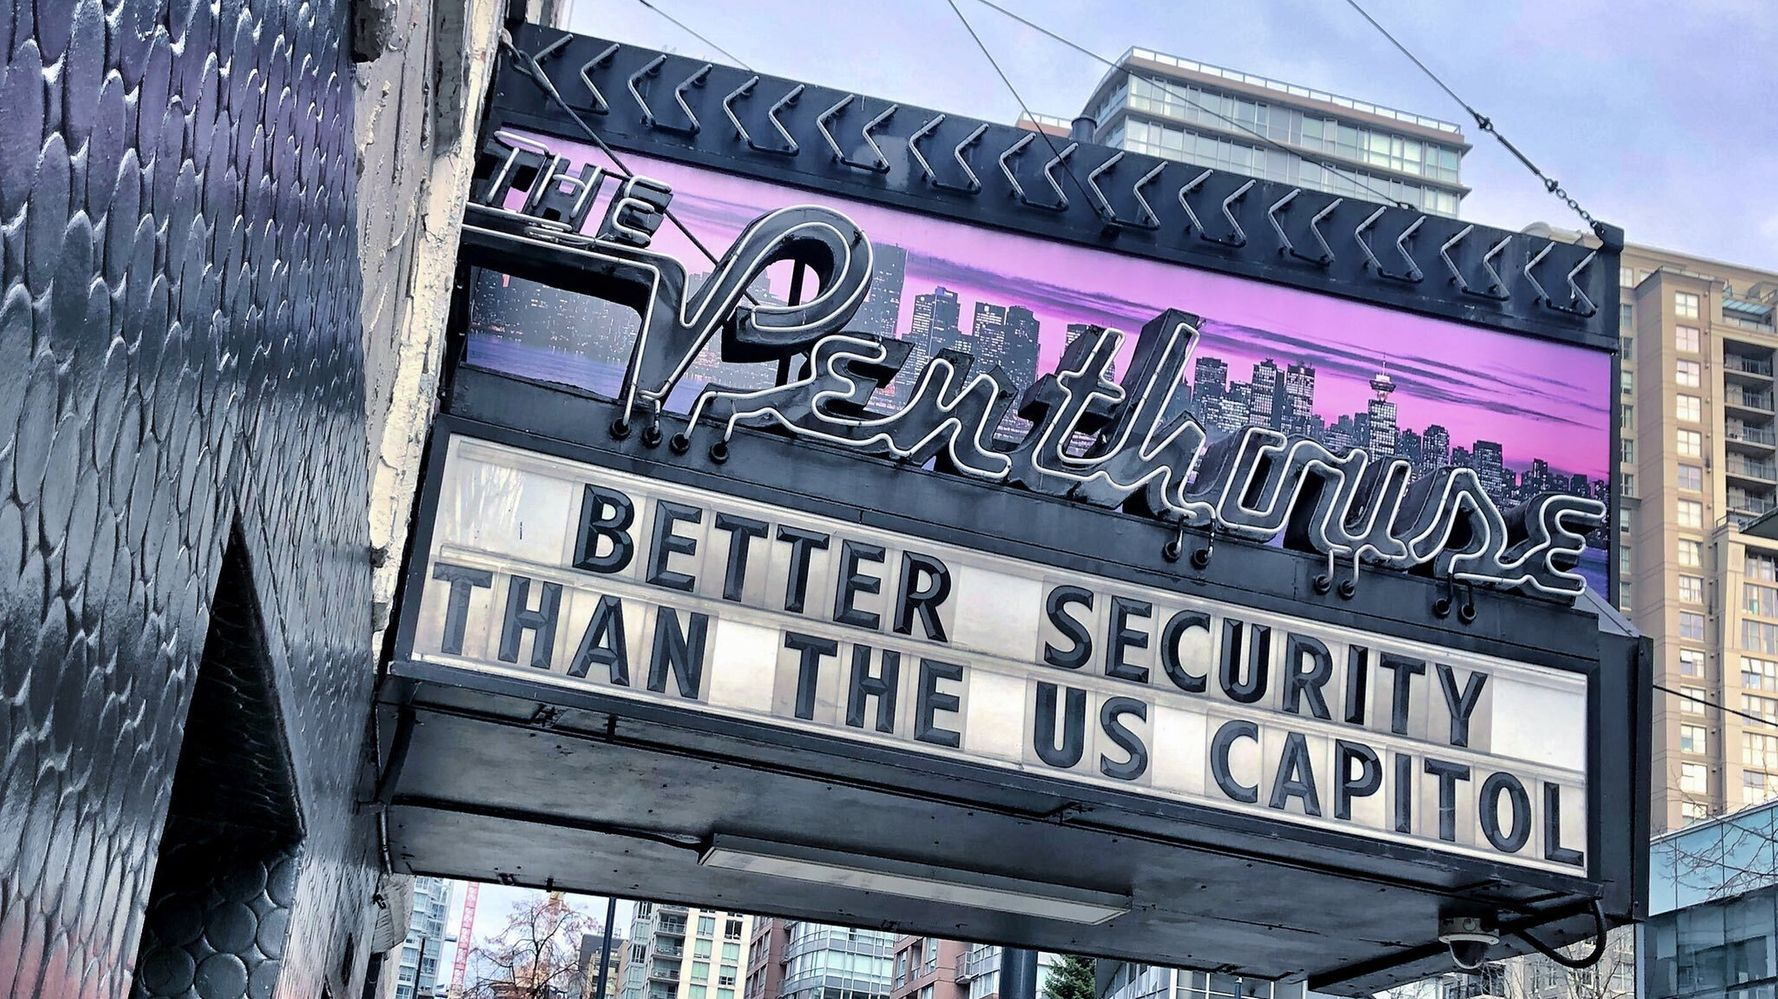 Vancouver Strip Club Can't Resist A Dig At U.S. Capitol Security